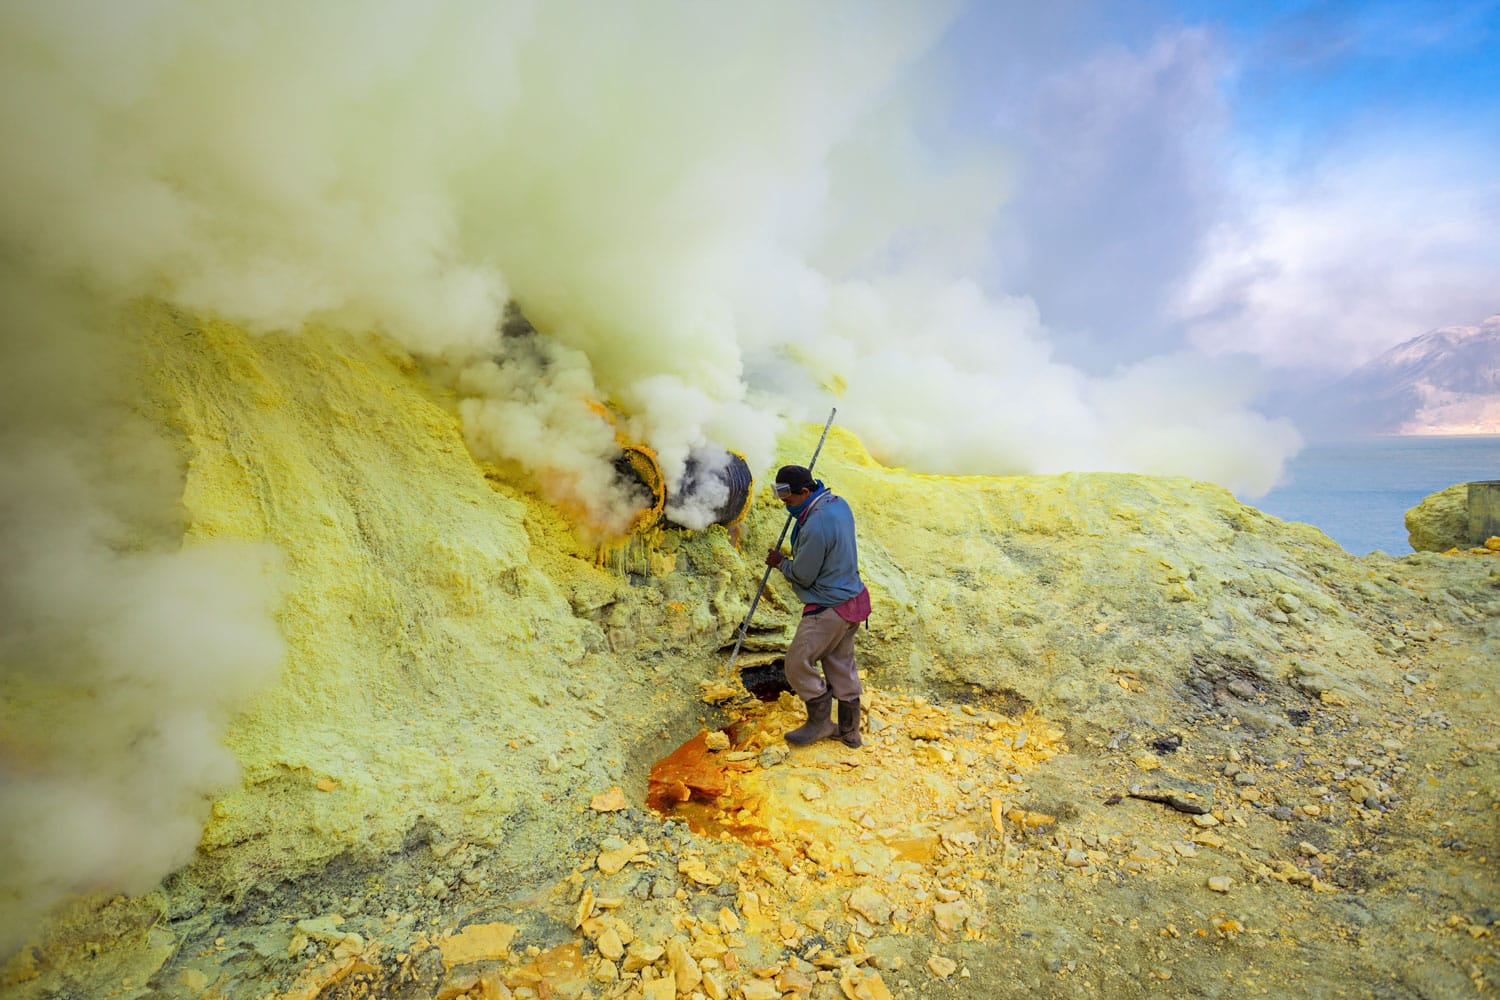 Sulfur miners inside crater Ijen volcano crater, Banyuwangi district, Indonesia